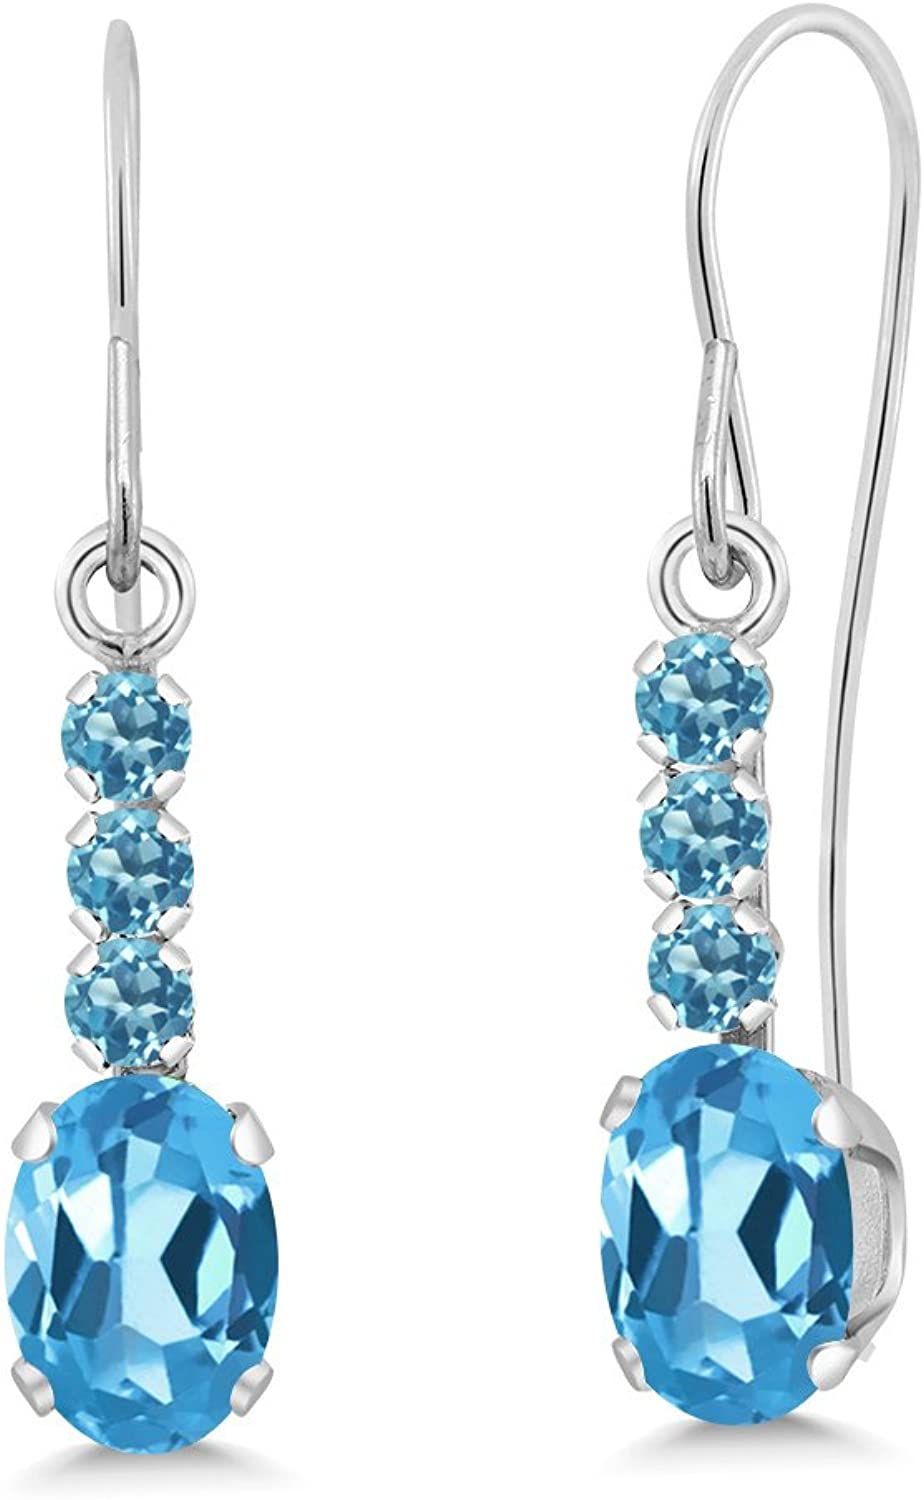 1.40 Ct Oval Swiss bluee Topaz and Simulated Topaz 10K White gold Earrings